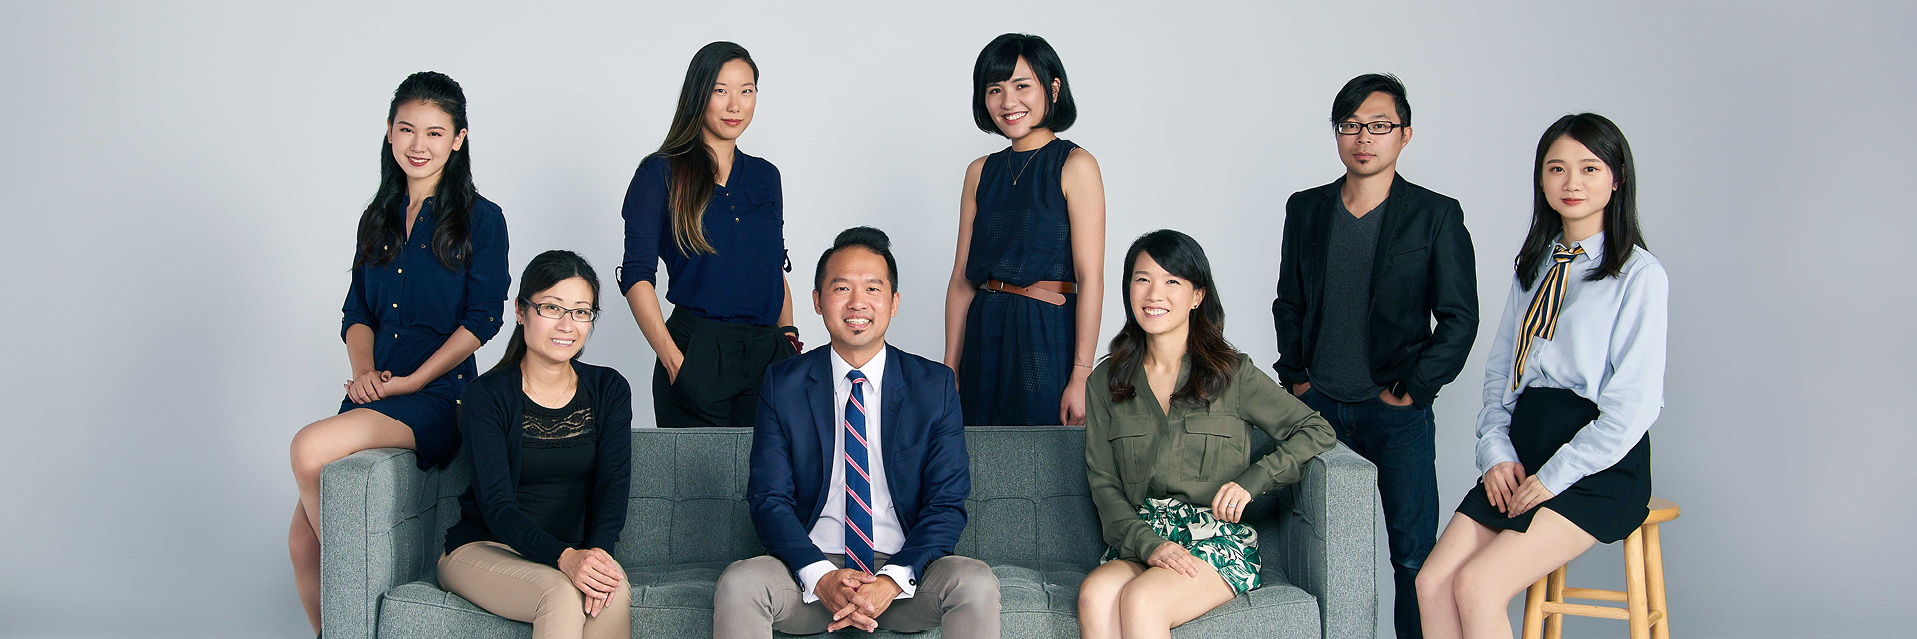 The Flowmarq Brand Consulting & Design Agency team